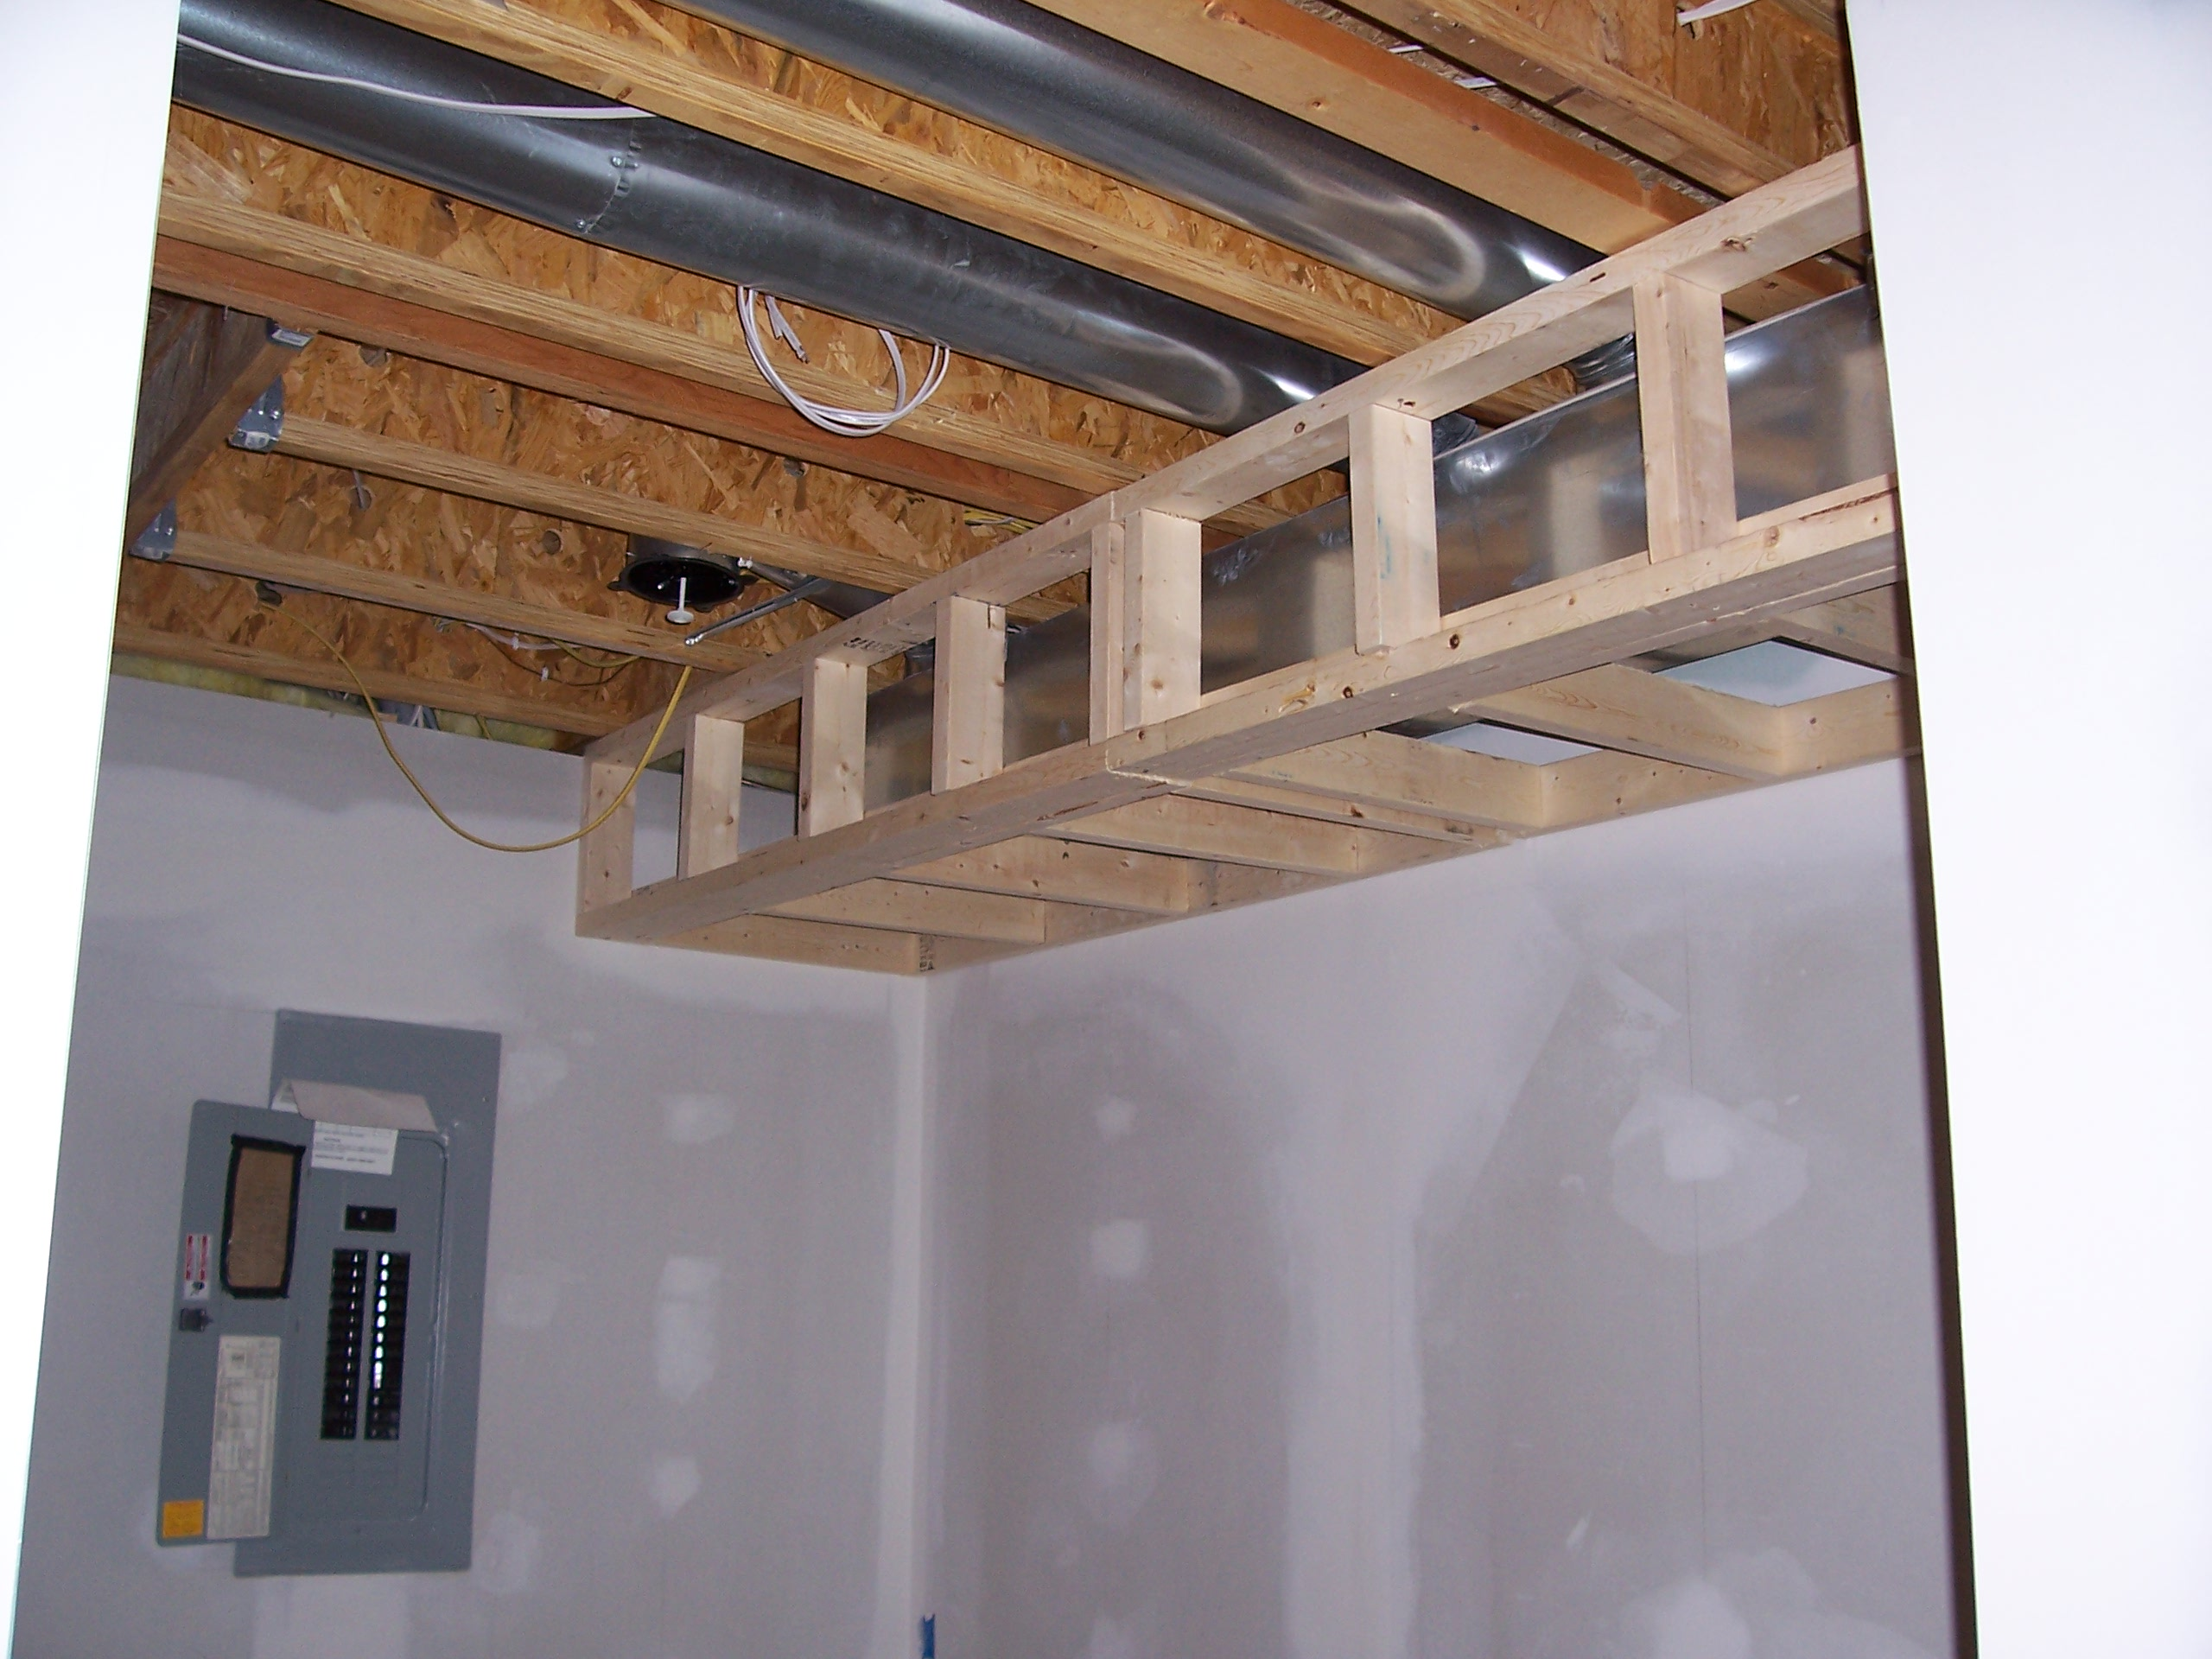 file air duct and fuse box in a construction. Black Bedroom Furniture Sets. Home Design Ideas